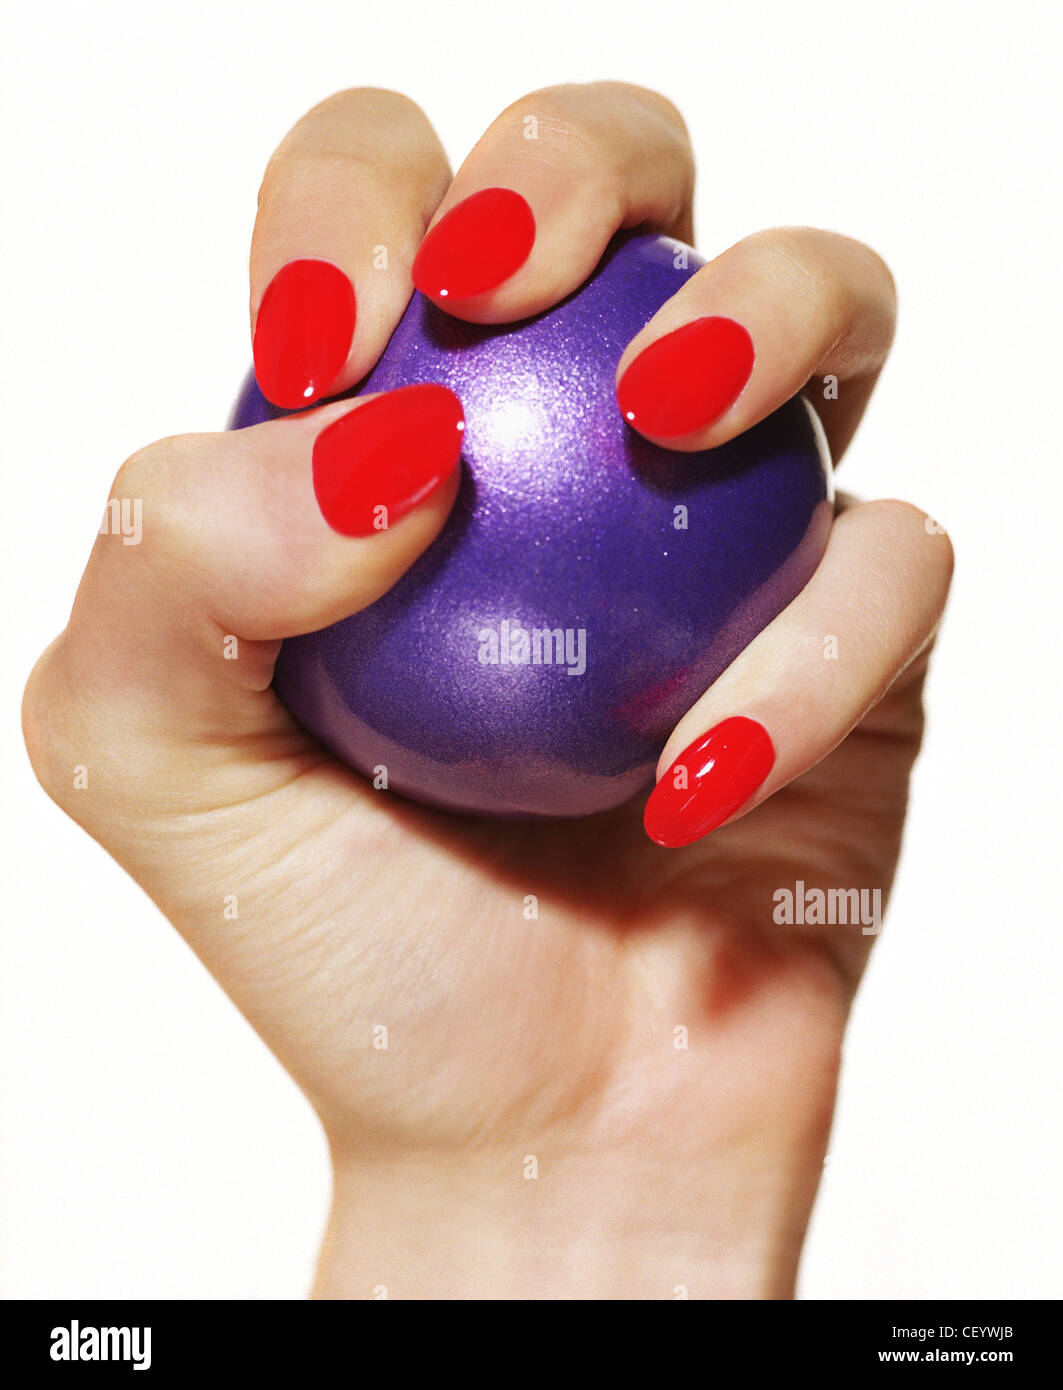 female wearing bright red nail varnish squashing a purple stress